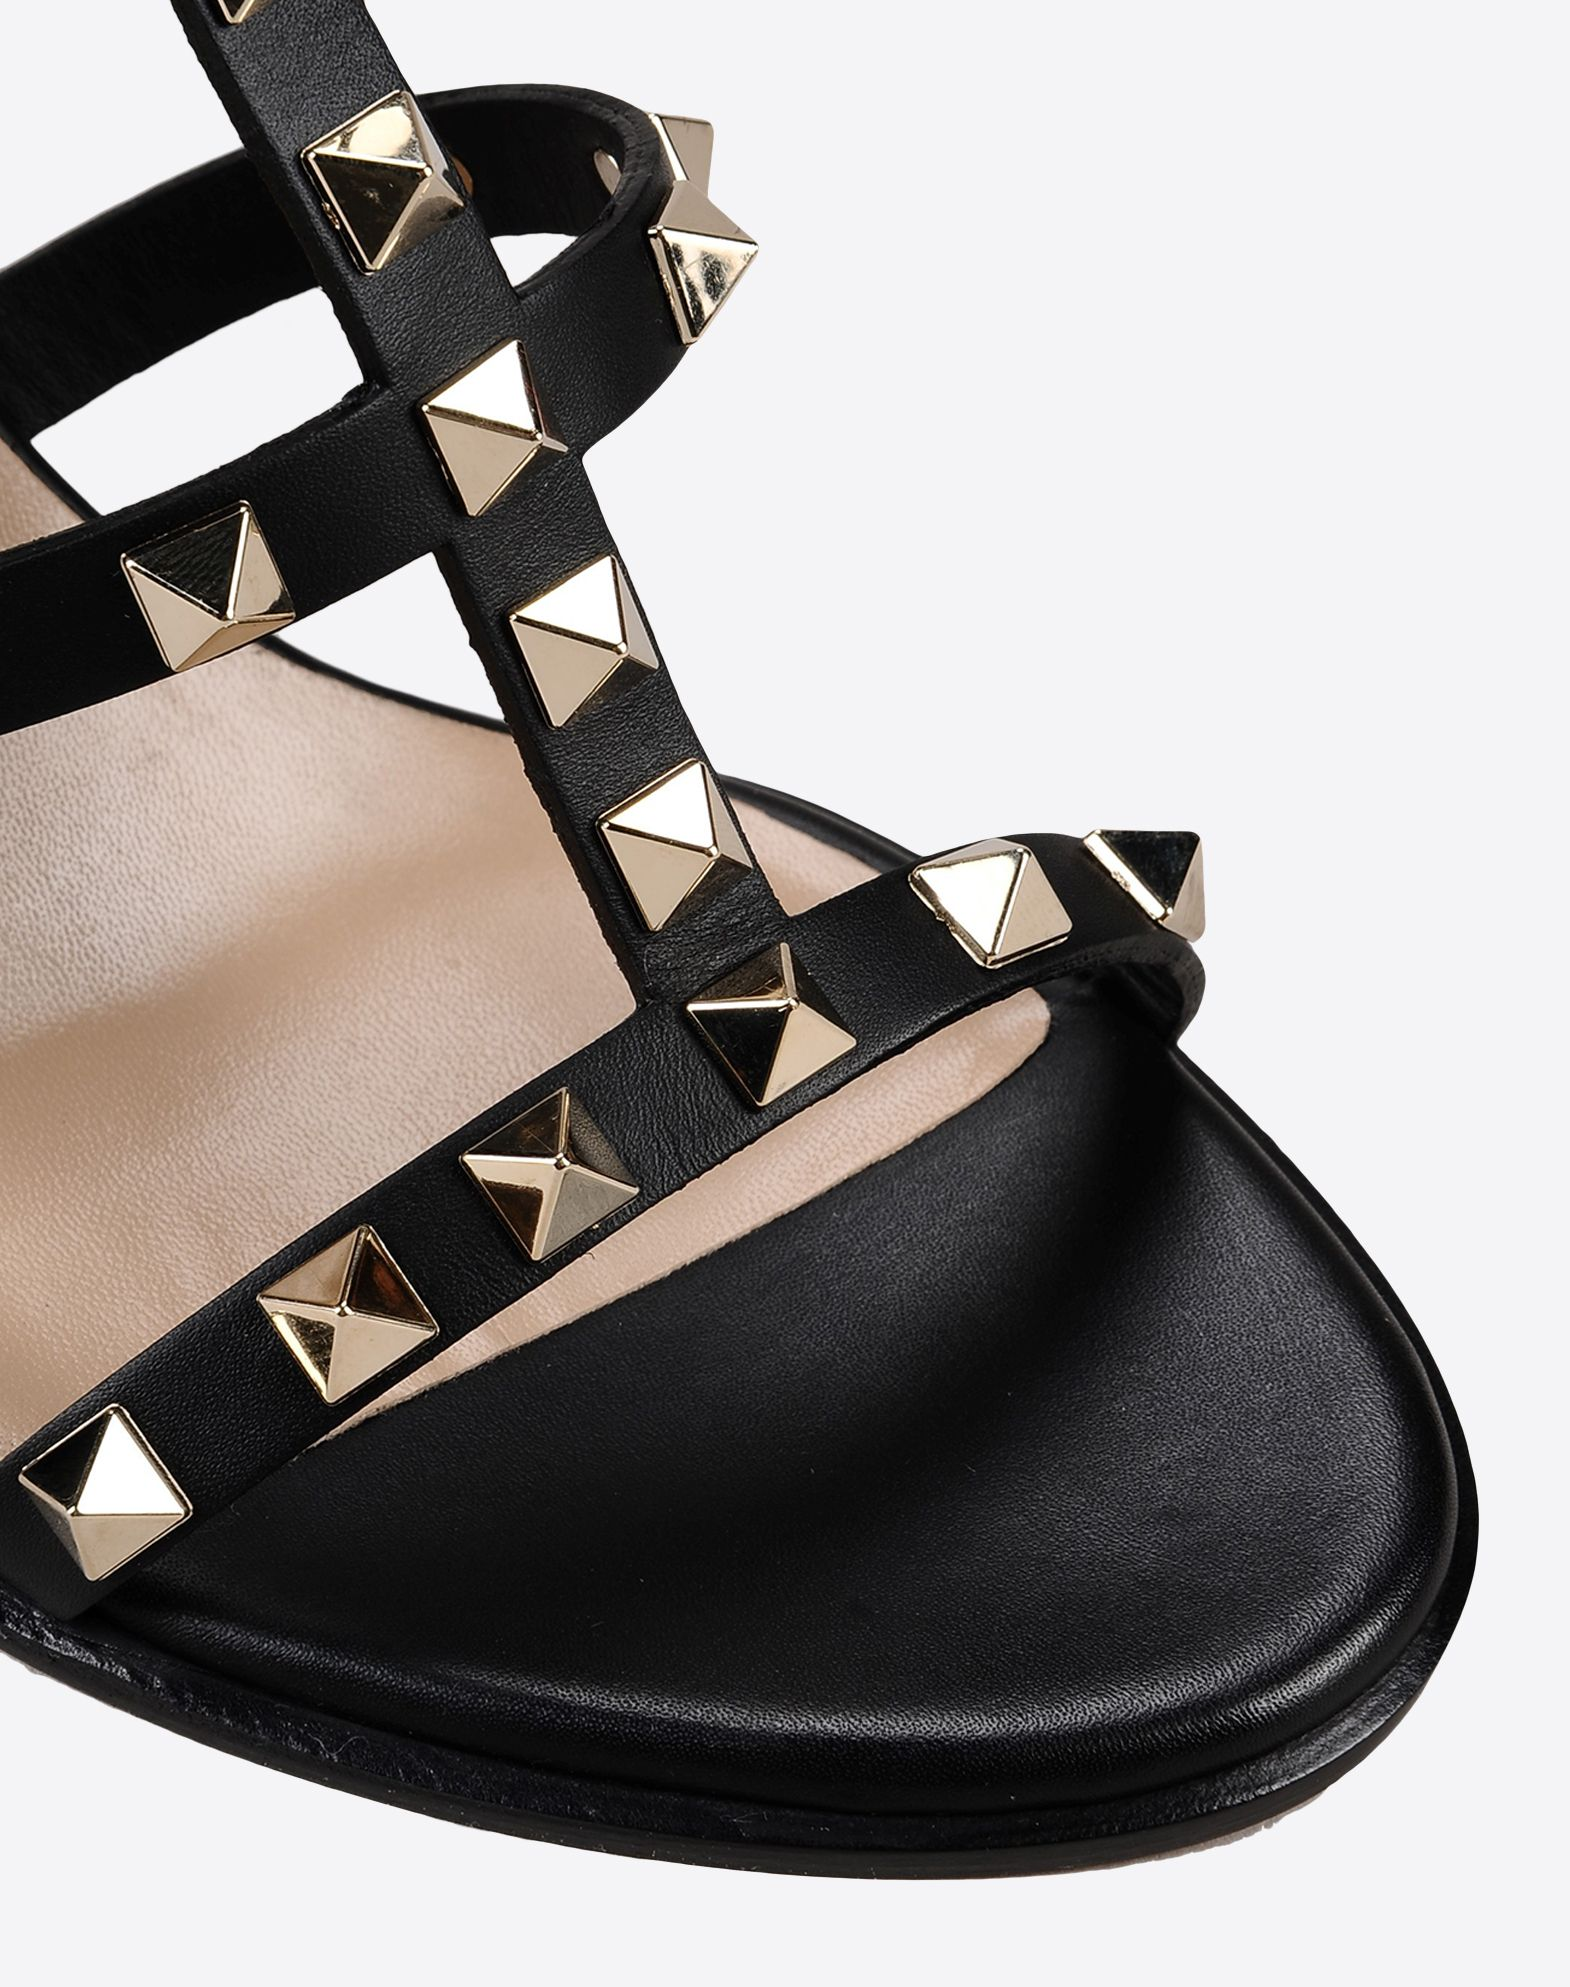 VALENTINO Studs Solid color Buckle Leather sole Round toeline Covered heel  44978444ok